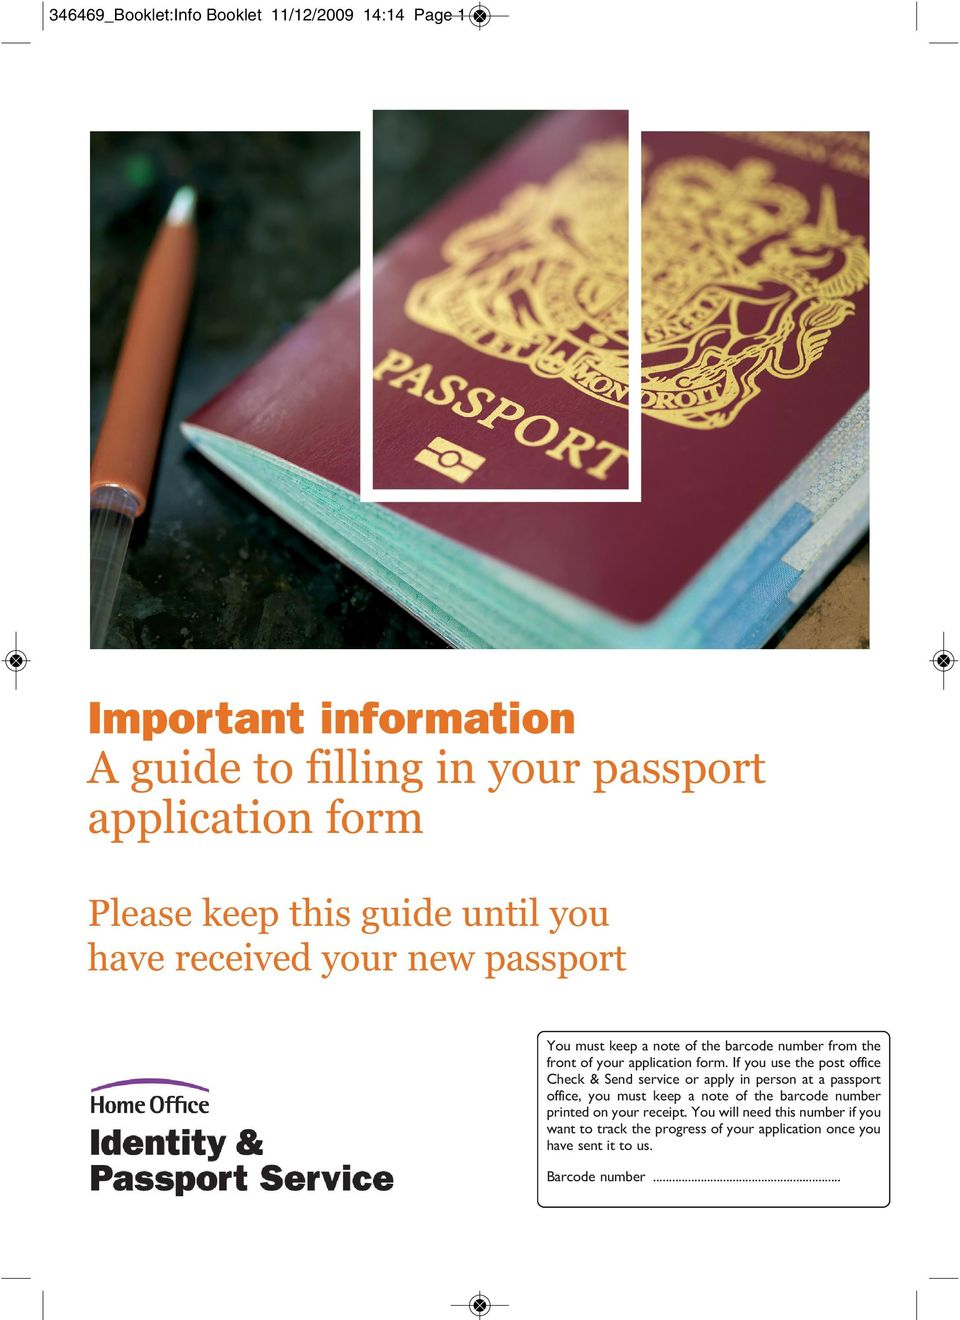 If you use the post office Check & Send service or apply in person at a passport office, you must keep a note of the barcode number printed on your